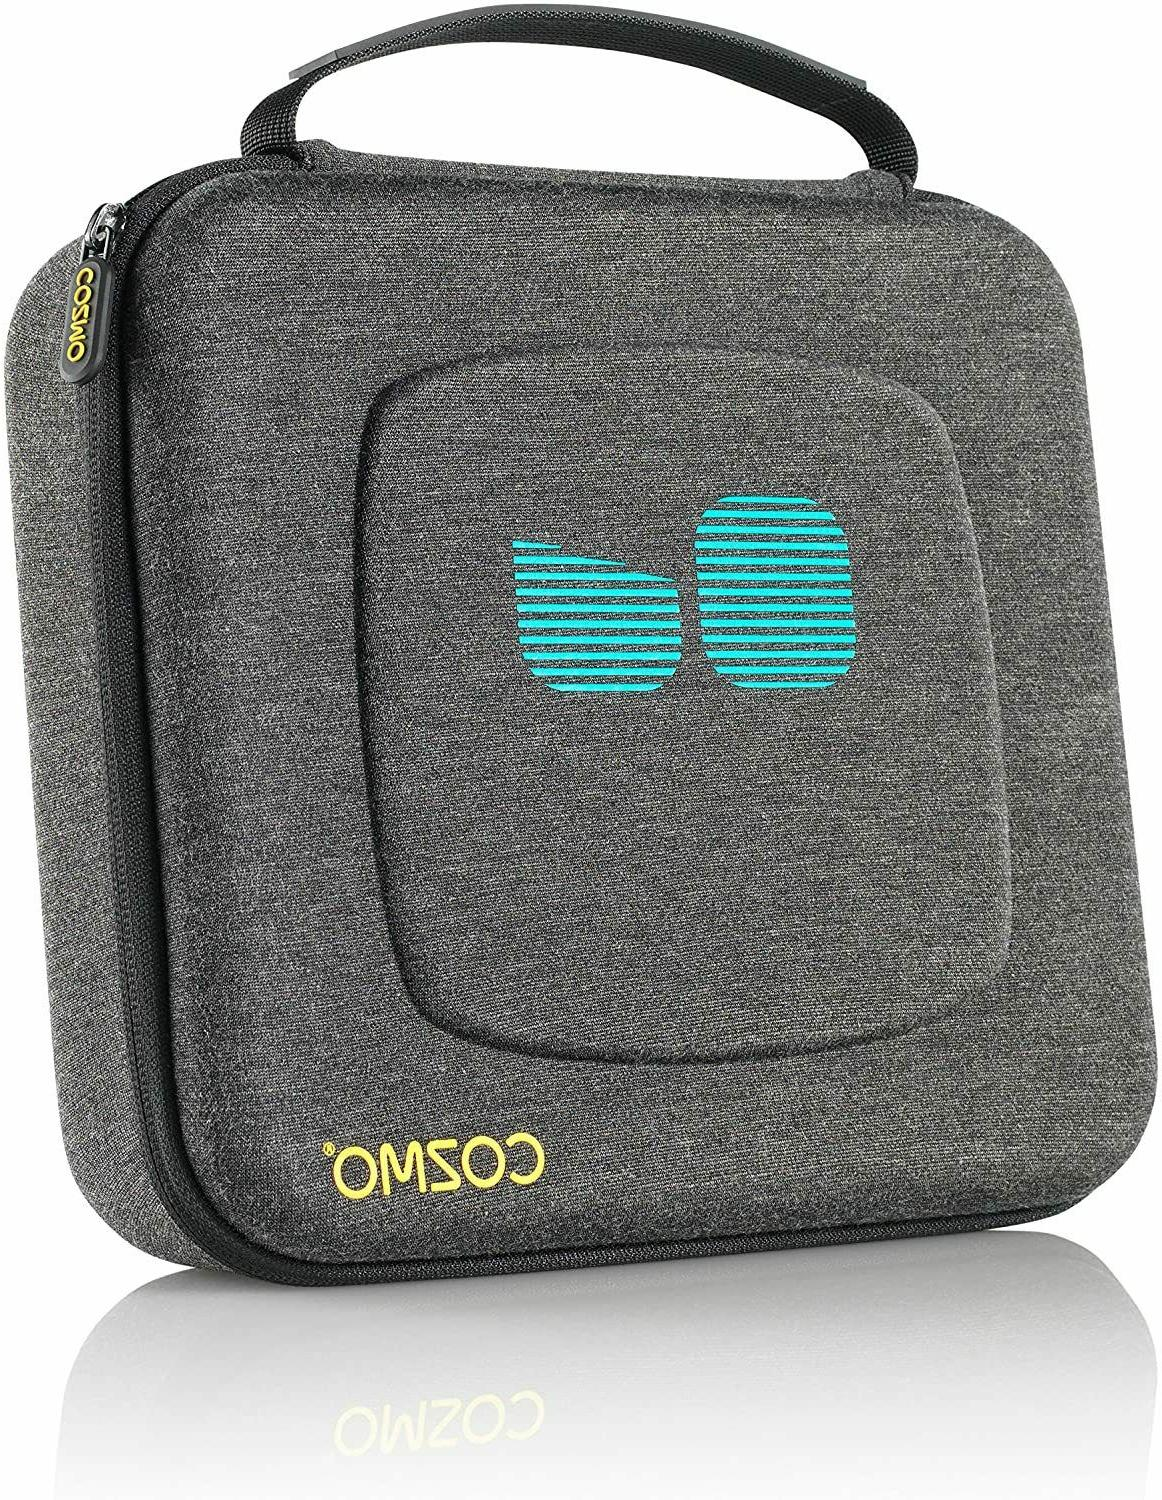 Anki Official Carry Case